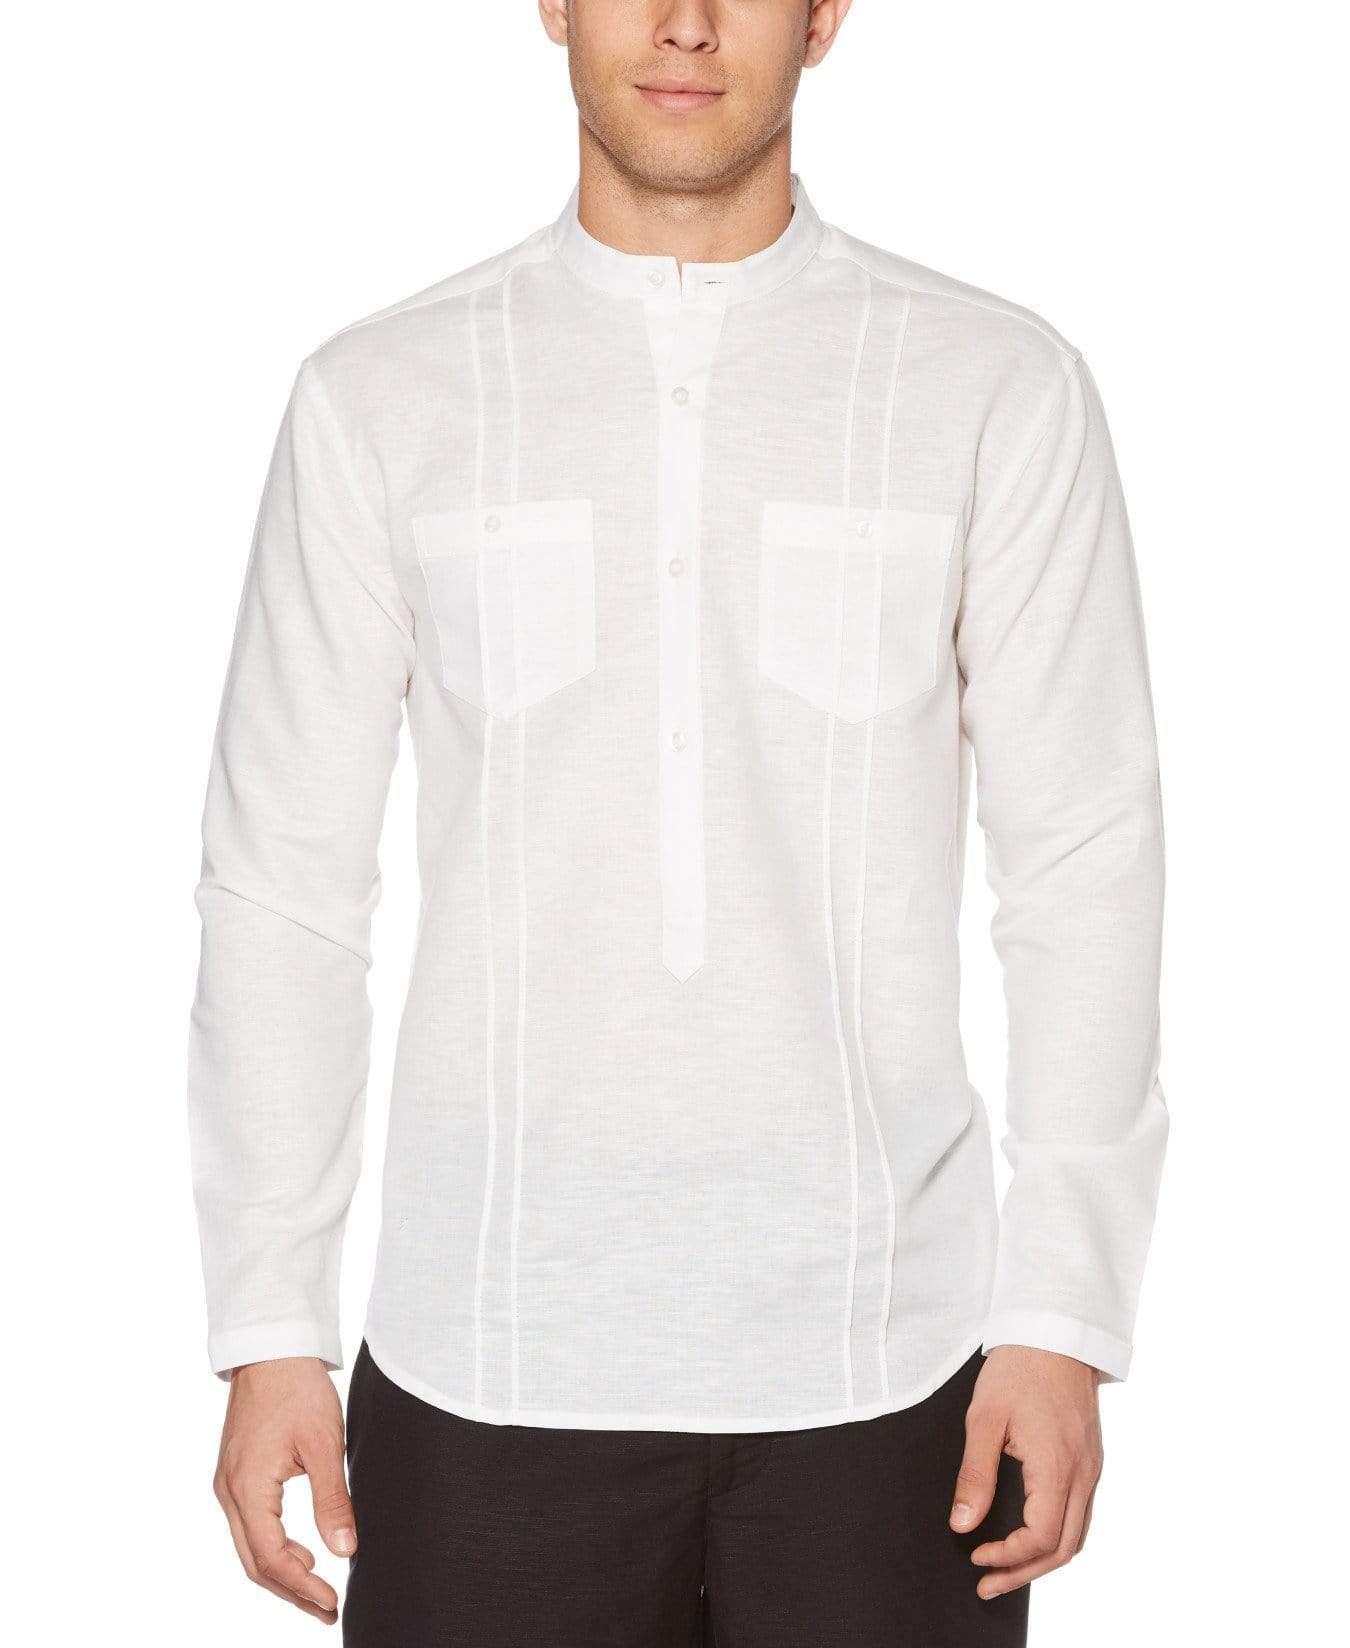 Perry Ellis Havanera Two-Pcket Popover Shirt